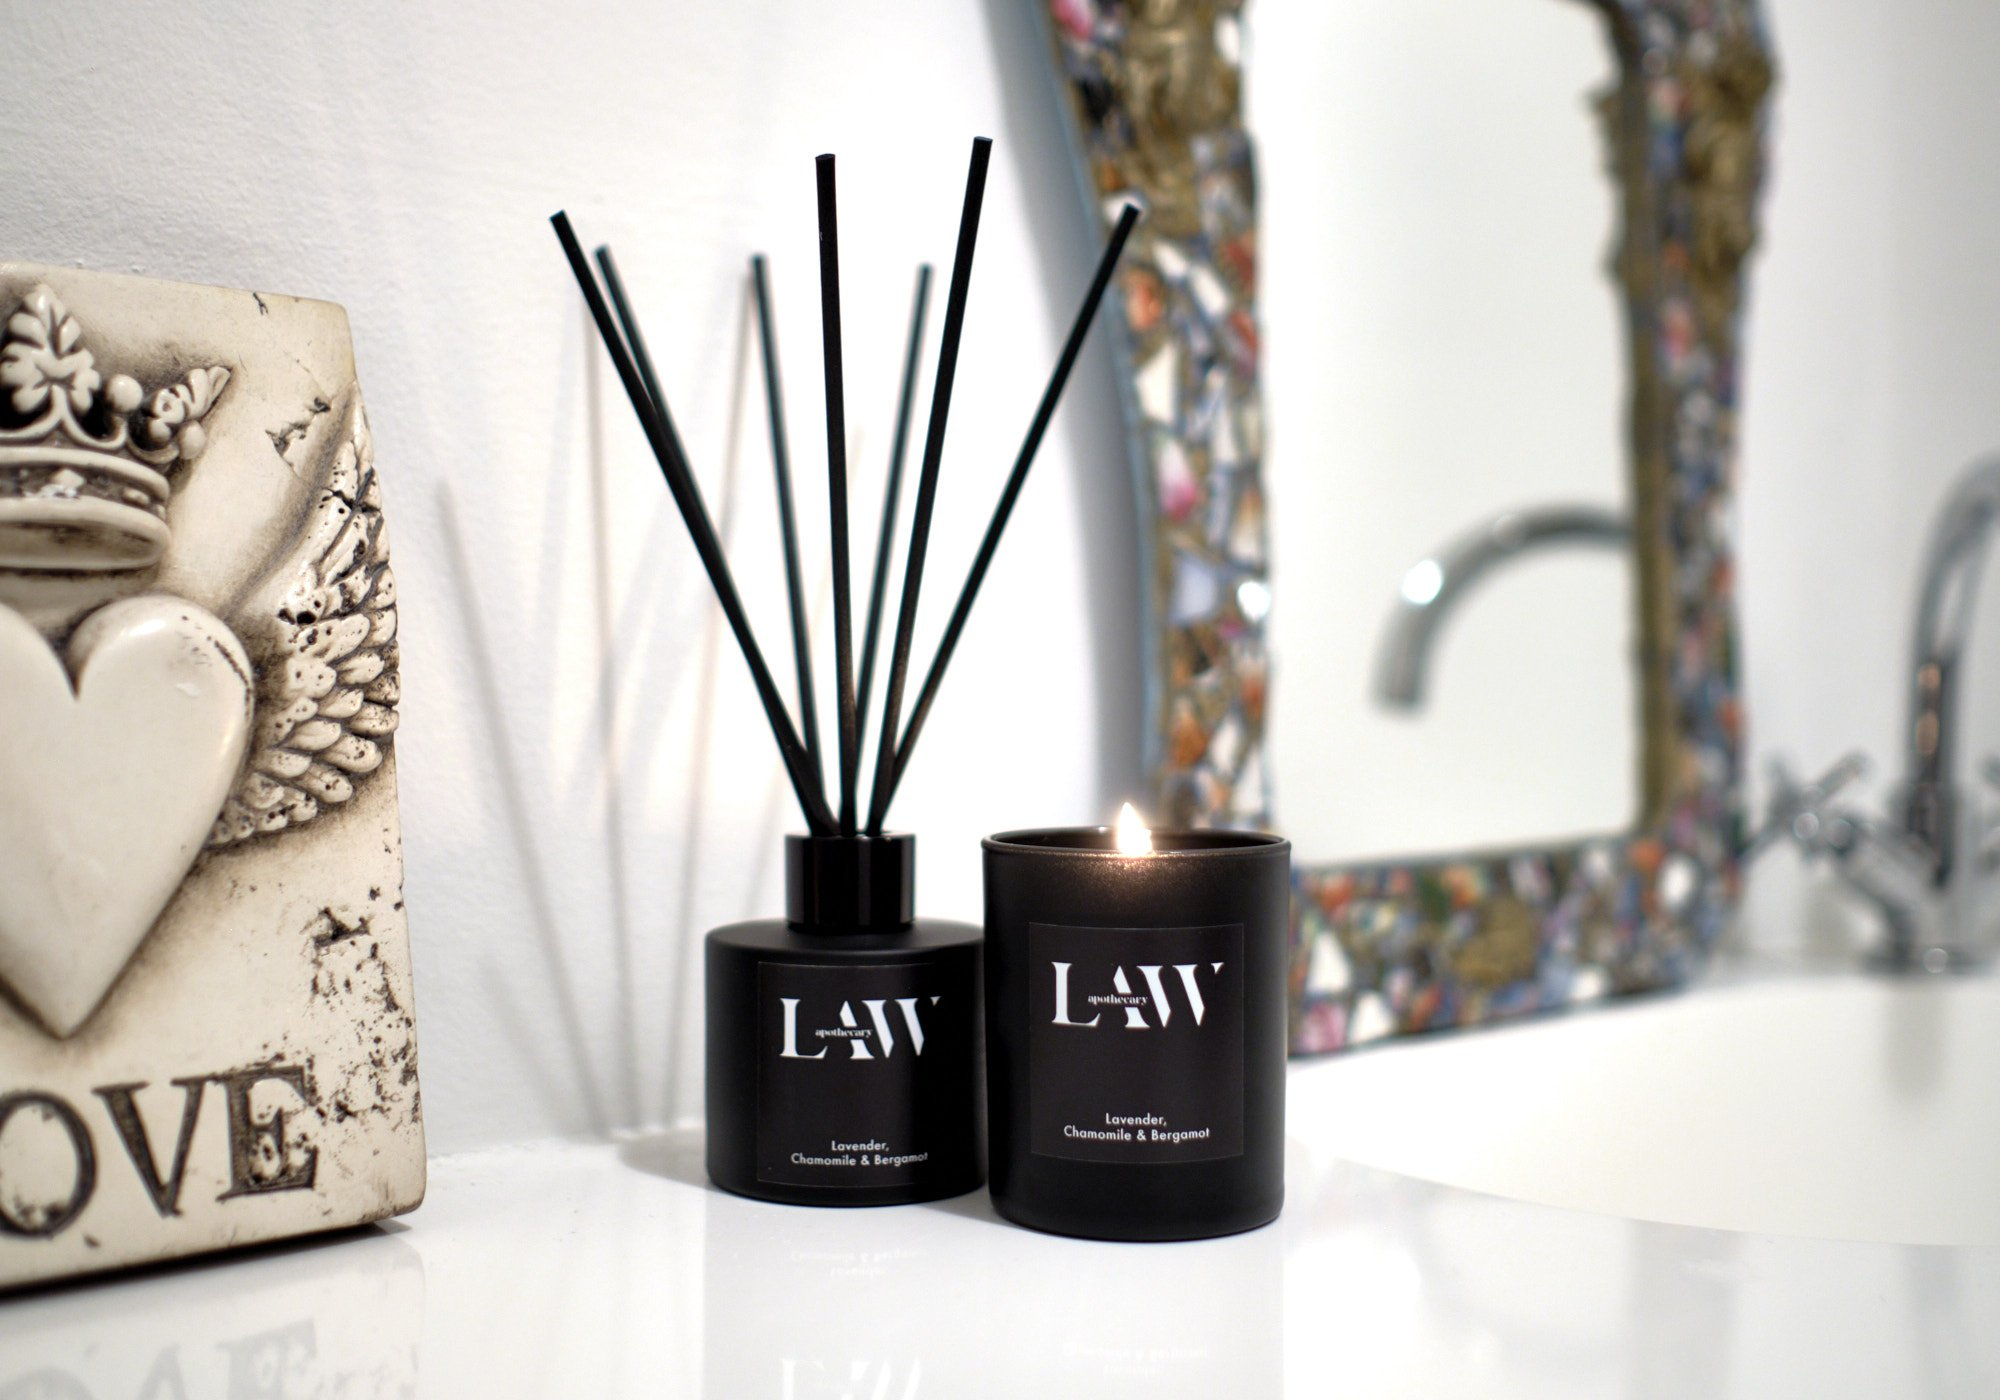 Product Photography for Retail & Ecommerce